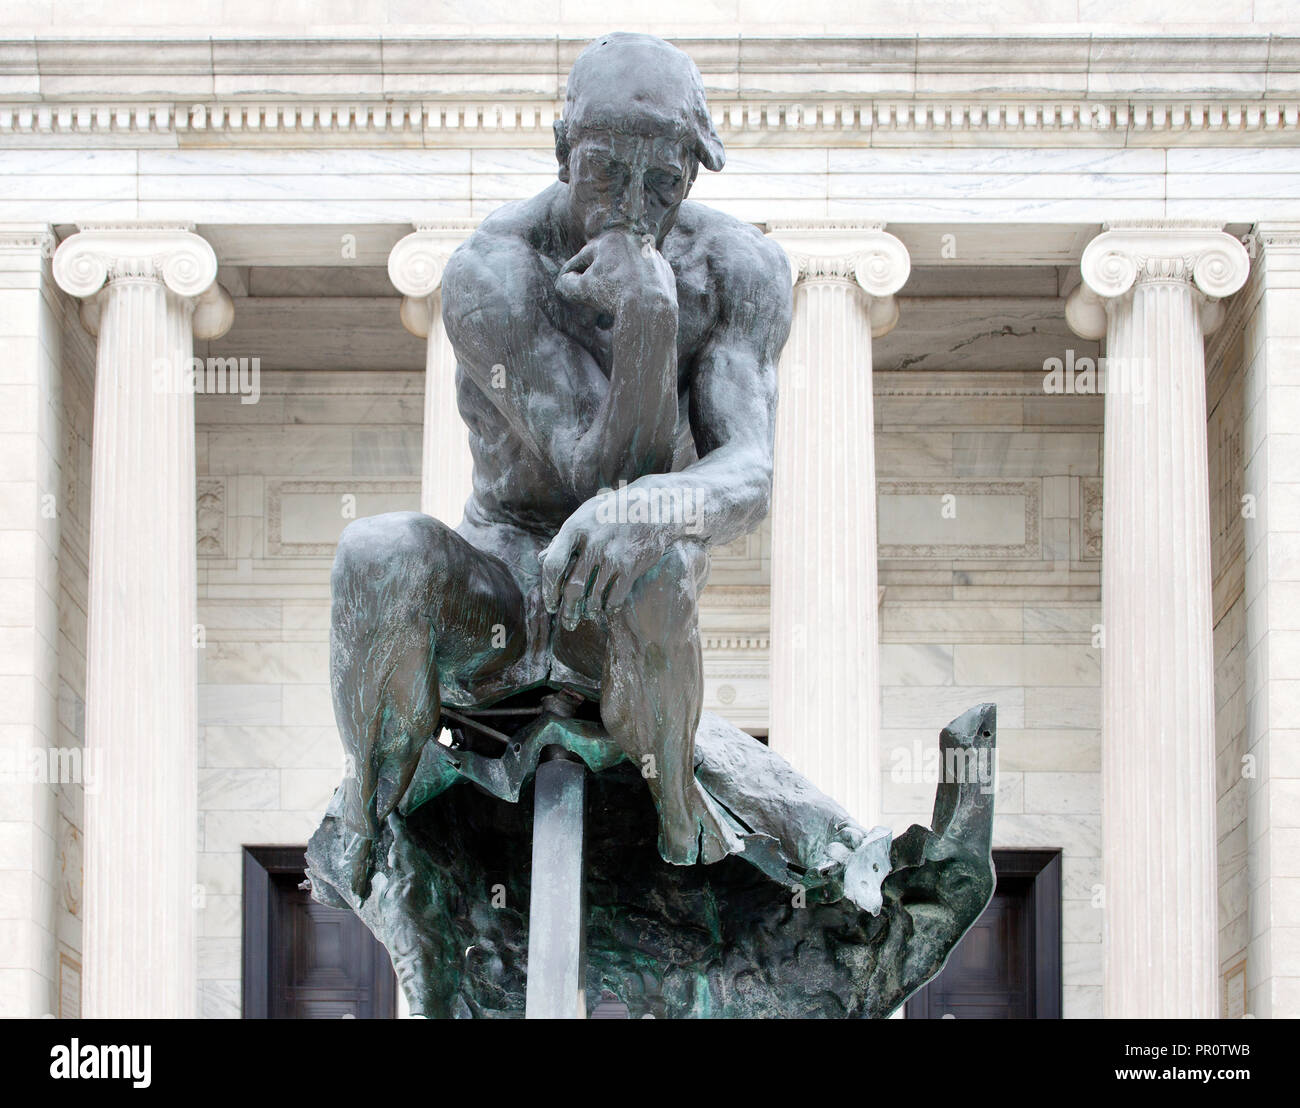 Thinker statue was bombed in Cleveland, Ohio - Stock Image